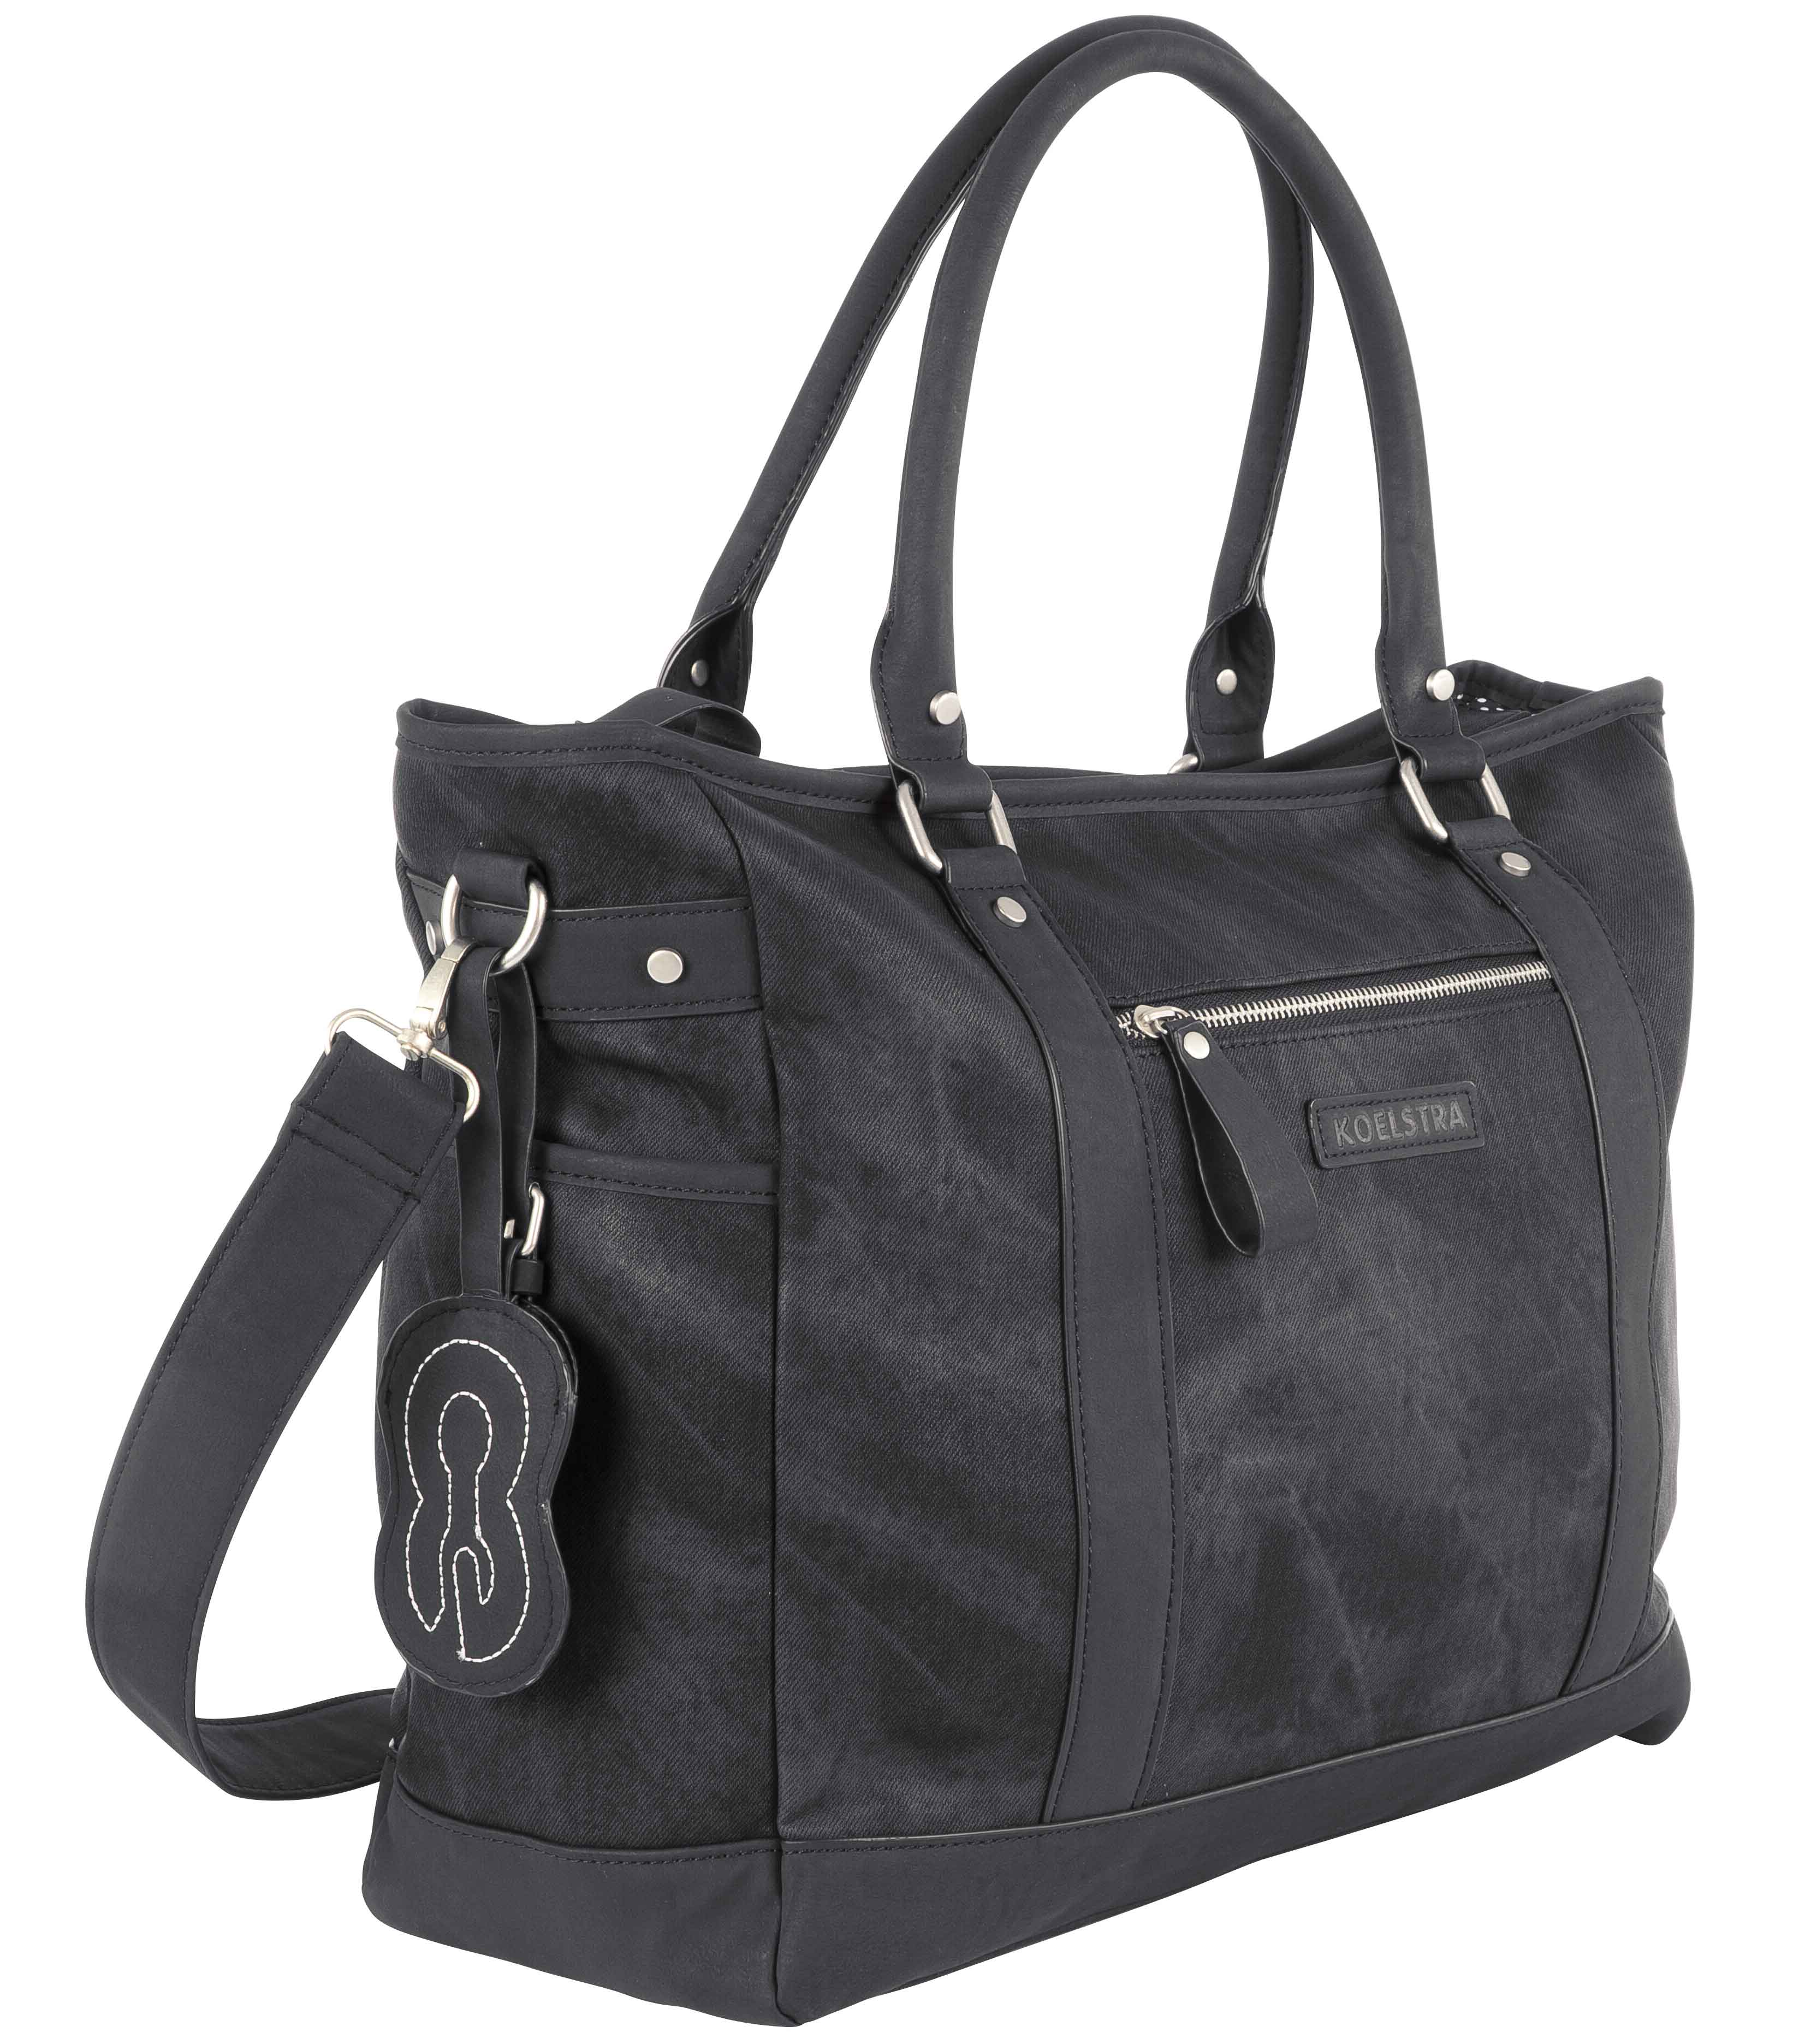 Sac à langer Koelstra Nimme denim noir - Collection 2018 8nk80